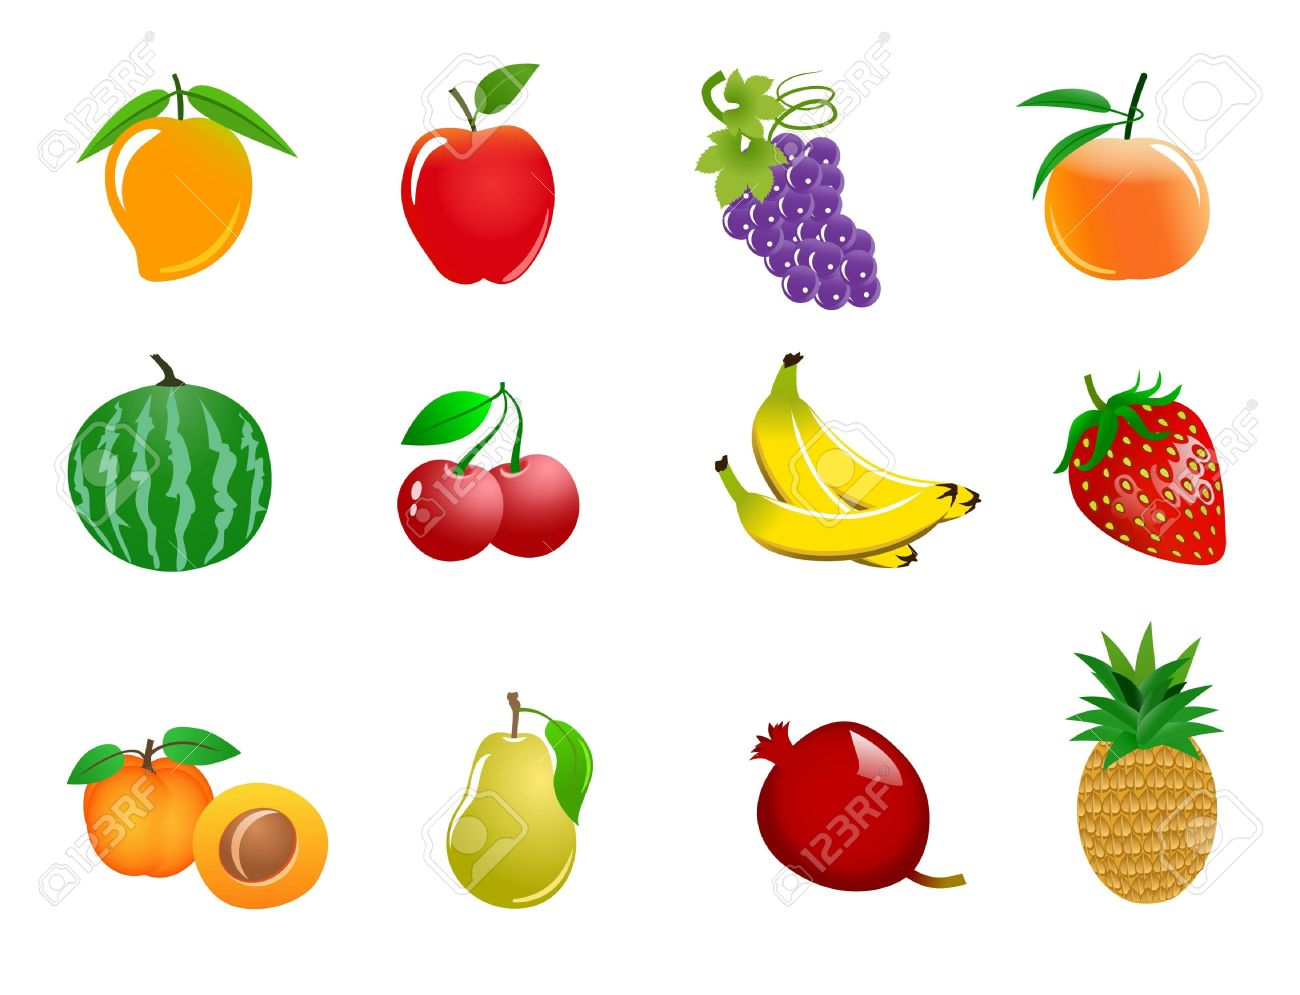 Different fruits clipart.